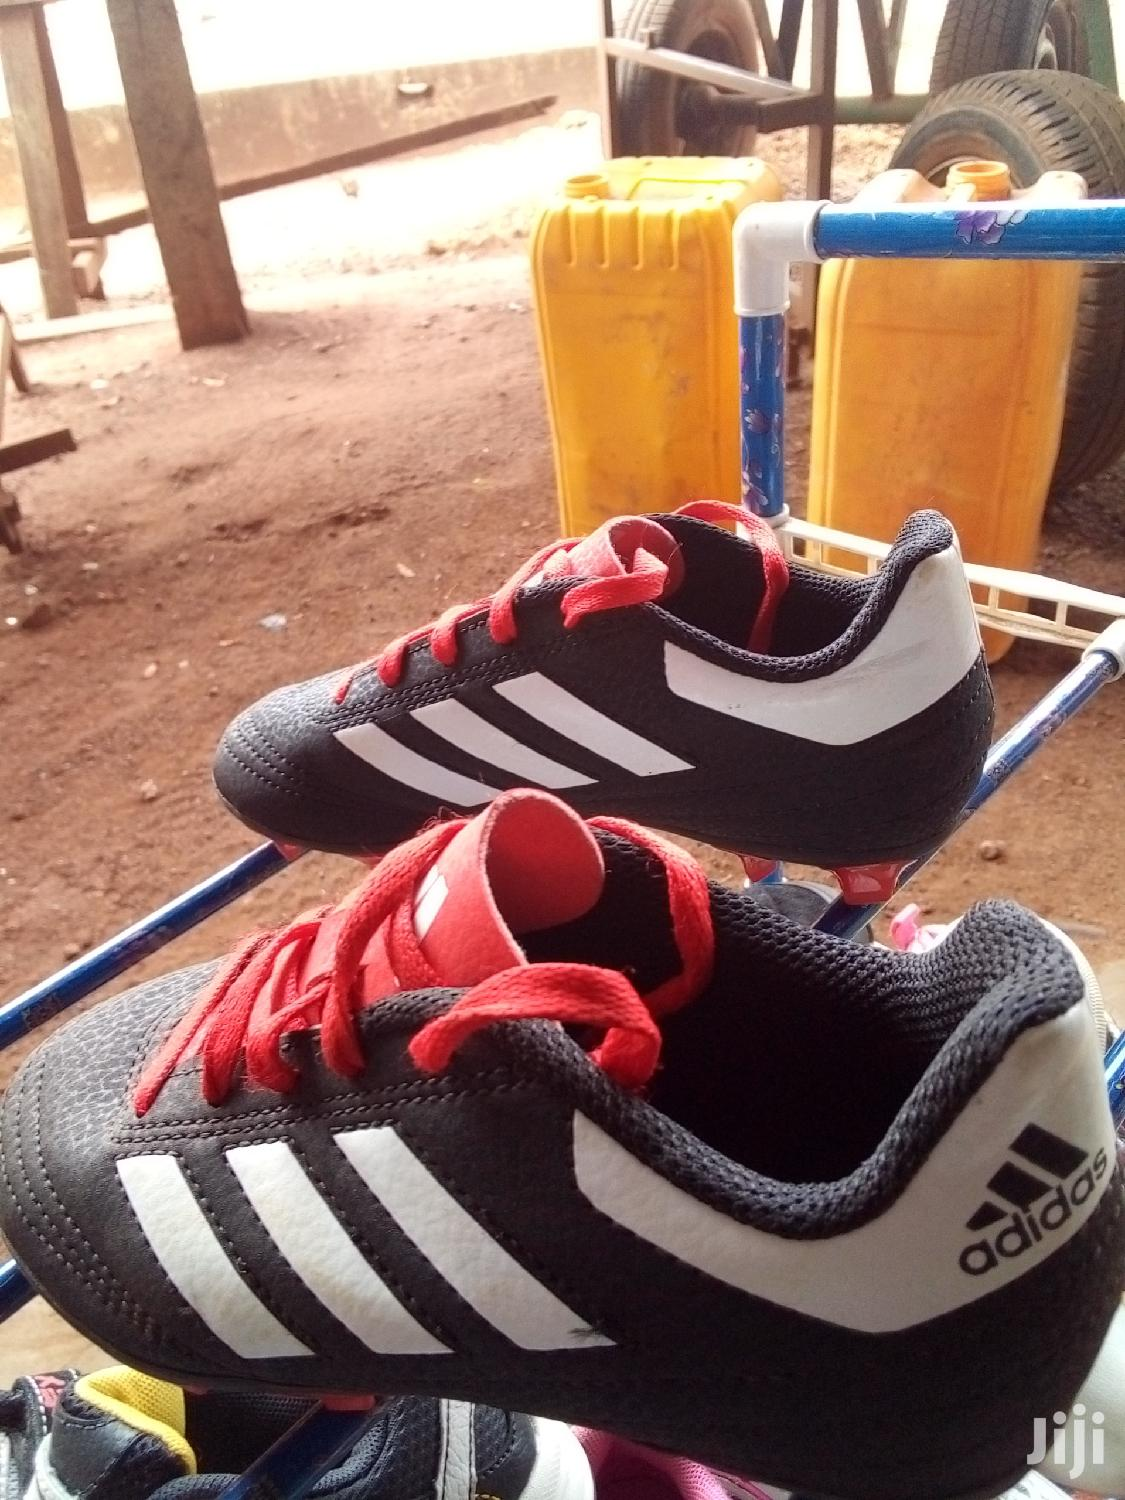 Quality Addidas Football Paying Shoes | Children's Shoes for sale in Tamale Municipal, Northern Region, Ghana